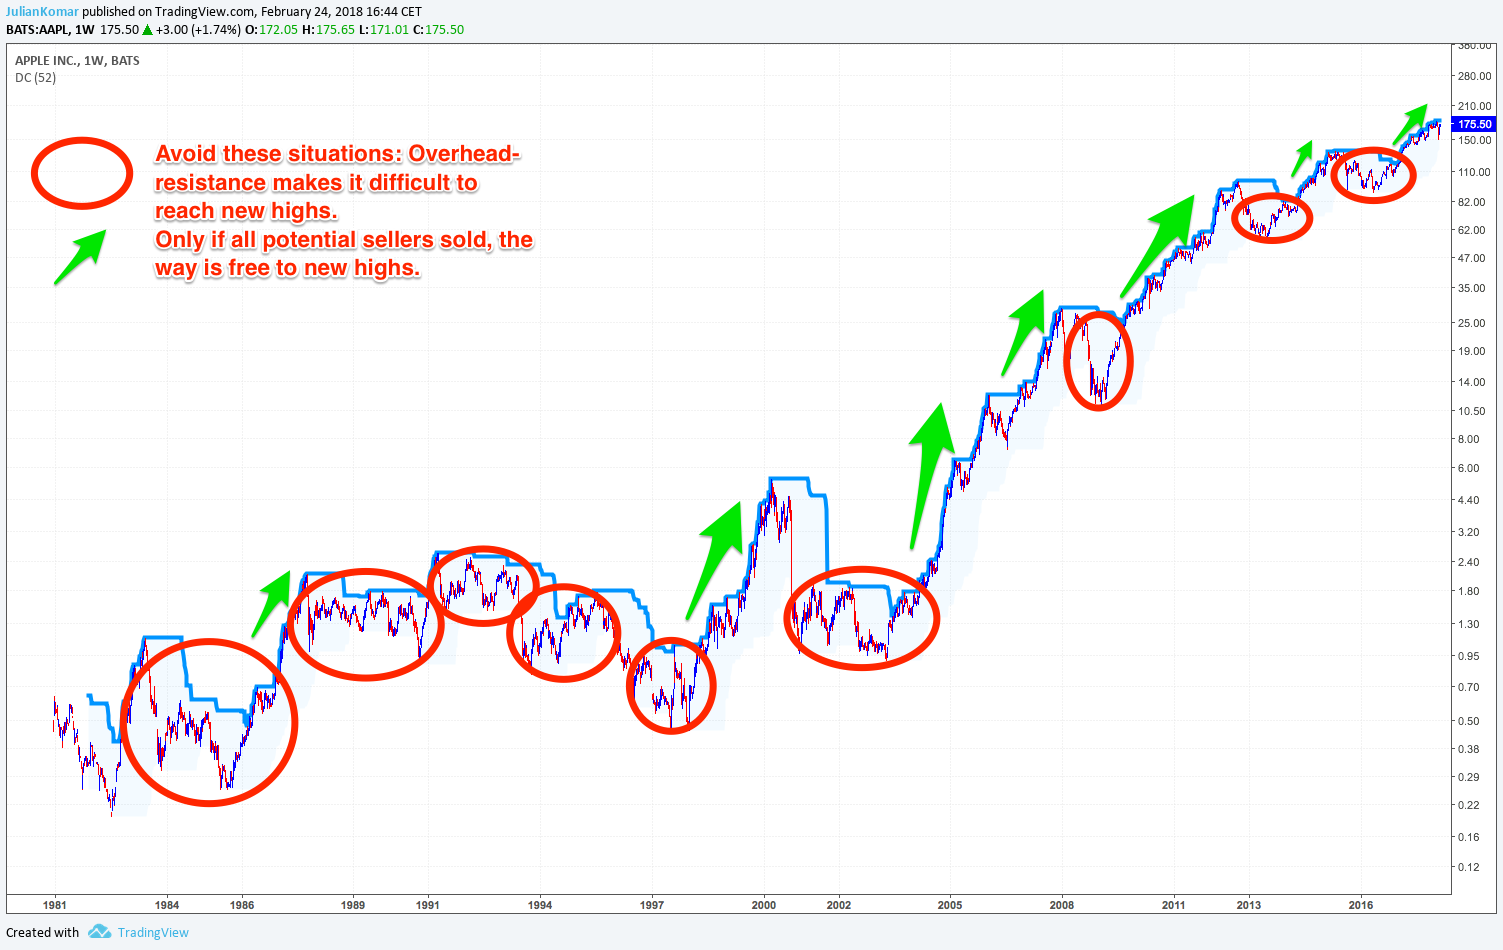 Apple stock in weekly chart with overhead-resistance situations